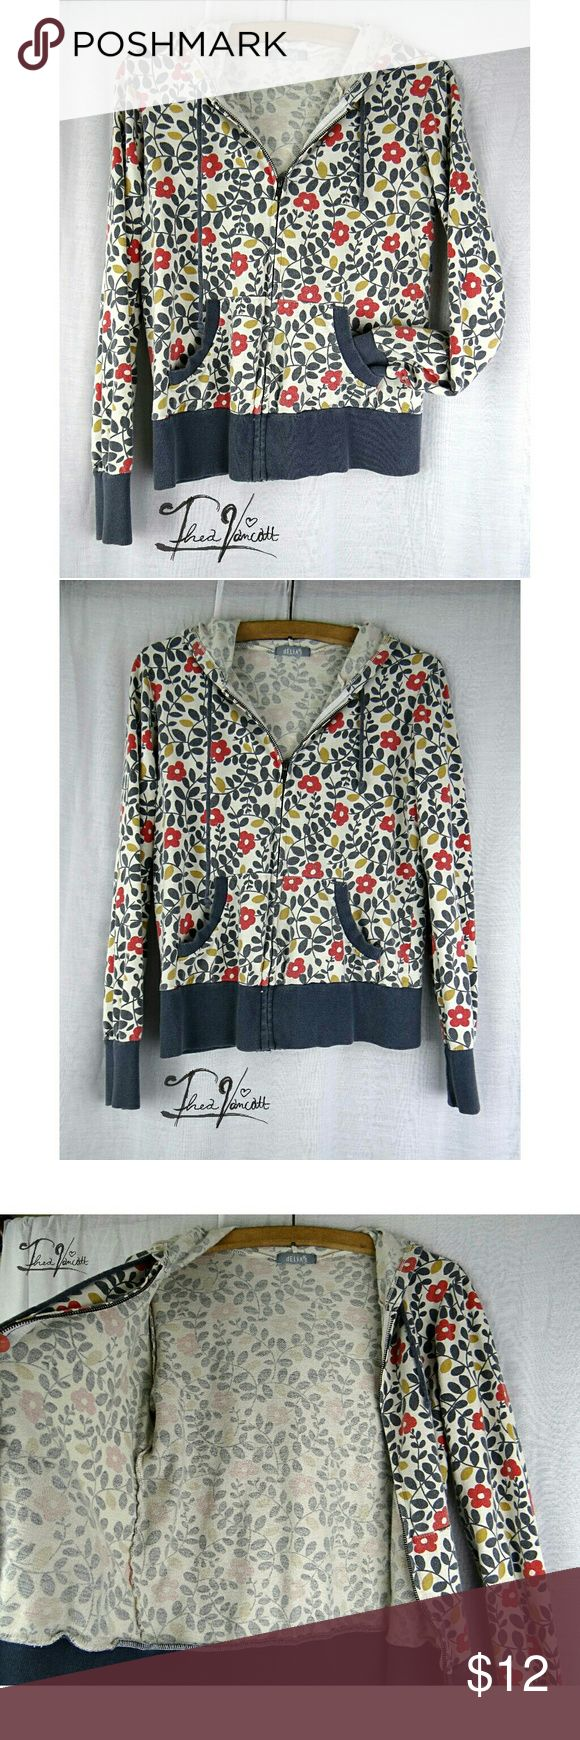 DELIAS - Floral Hoodie DELIAS Floral hoodie lightweight fabric. **Please note this item is not from Urban outfitters, the actual brand wasn't listed.*** Happy POSHing friends!! <3 Urban Outfitters Tops Sweatshirts & Hoodies